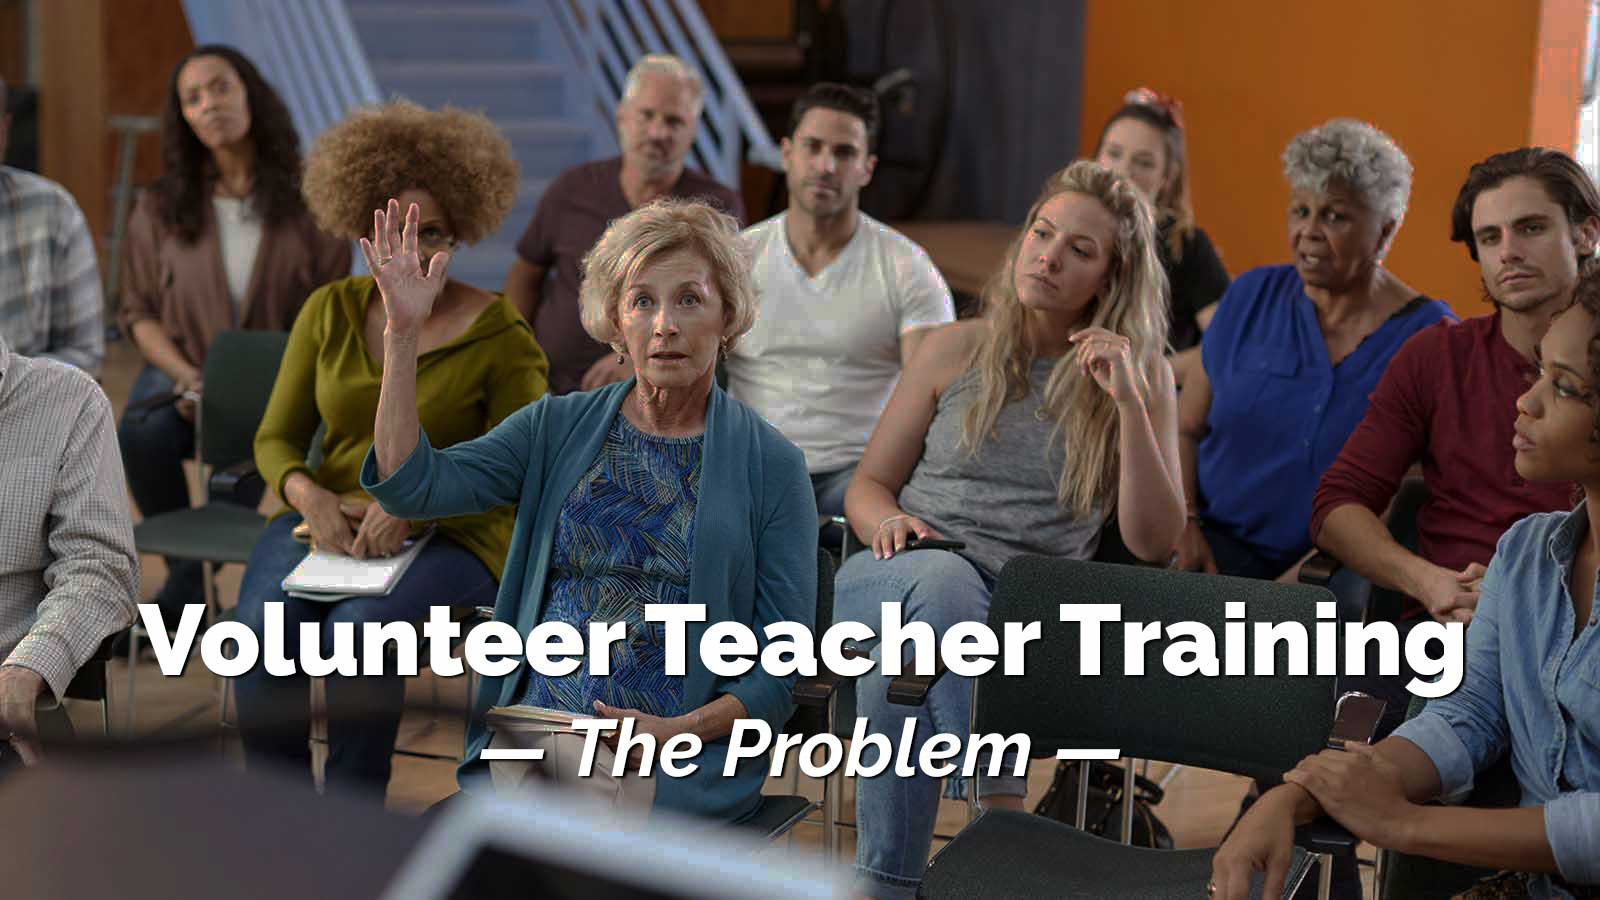 Woman raising hand in class. Volunteer Teacher Training. The Problem.